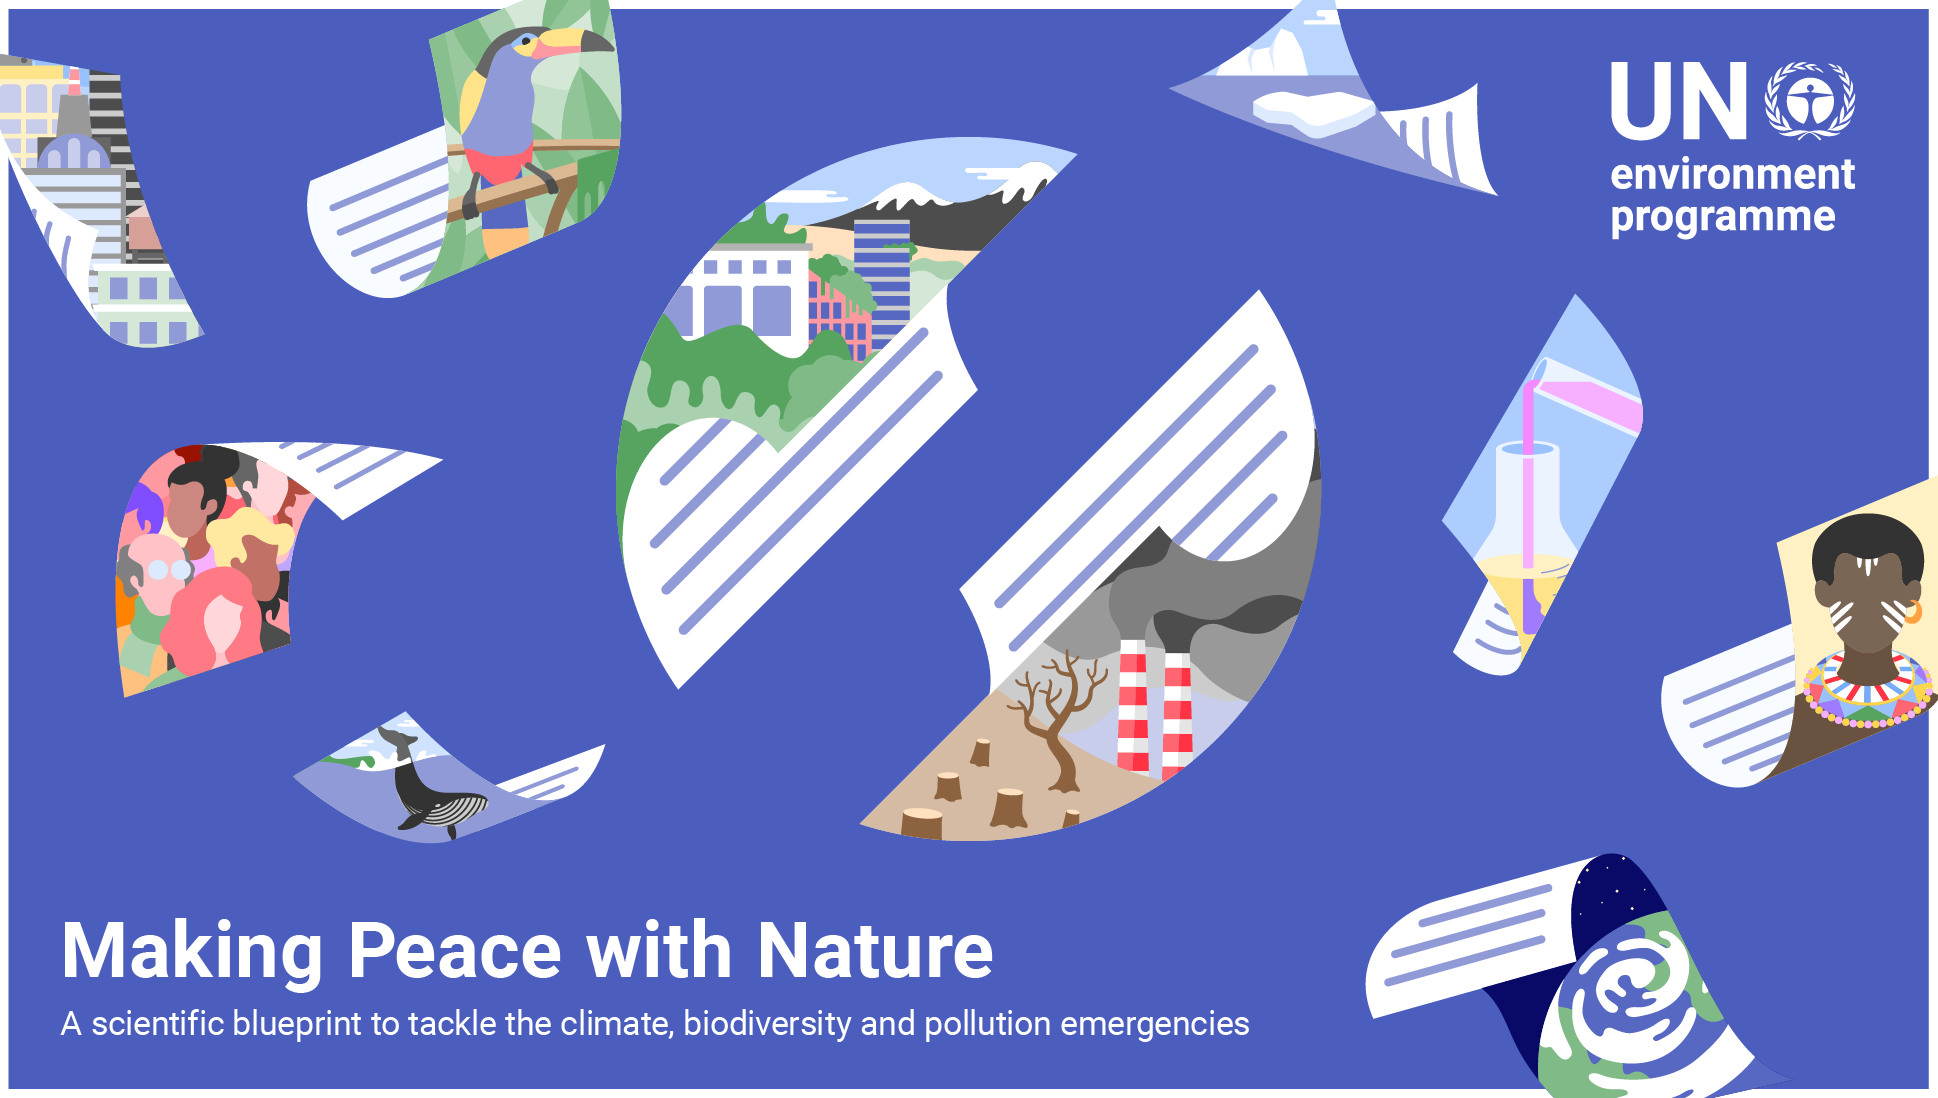 Make peace with nature: UNEP